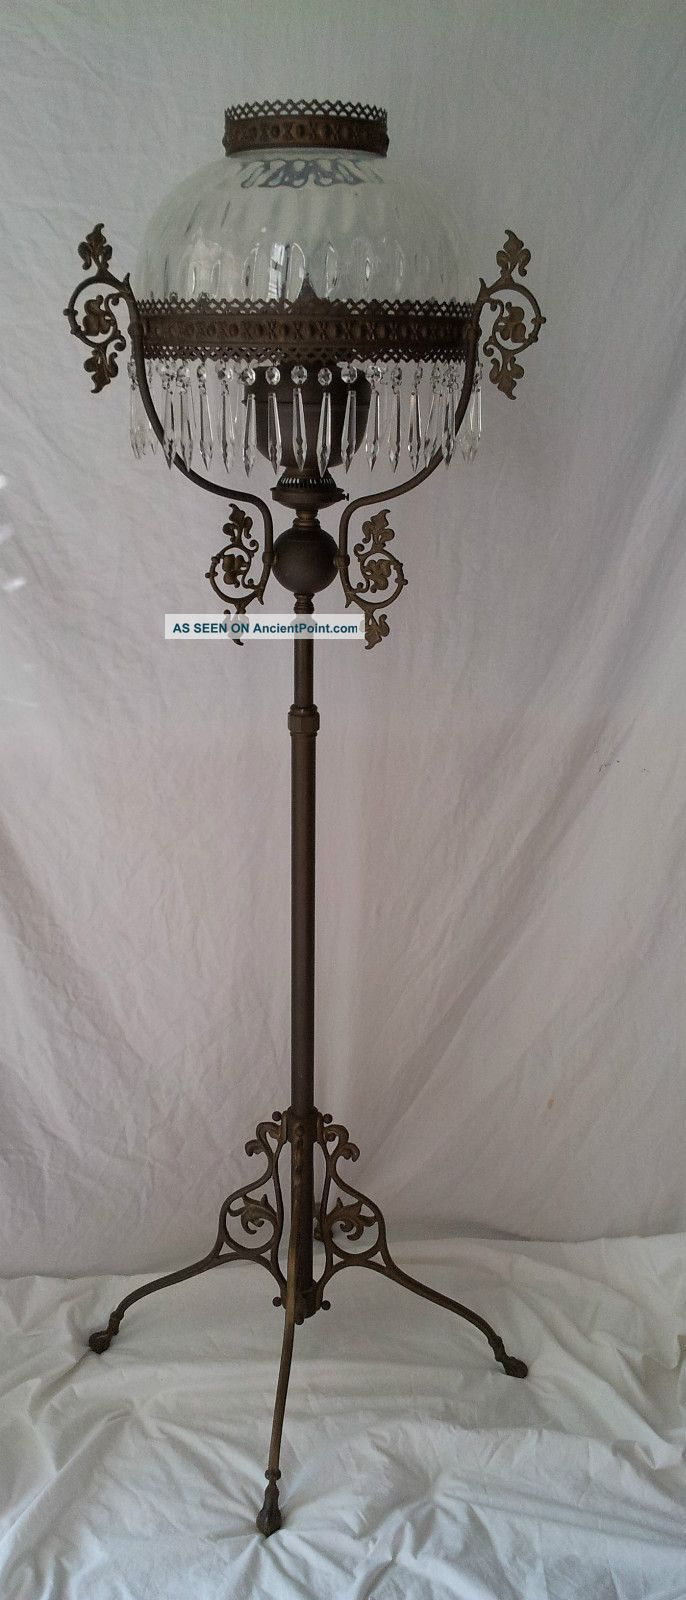 Vintage Victorian Floor Lamp The Image